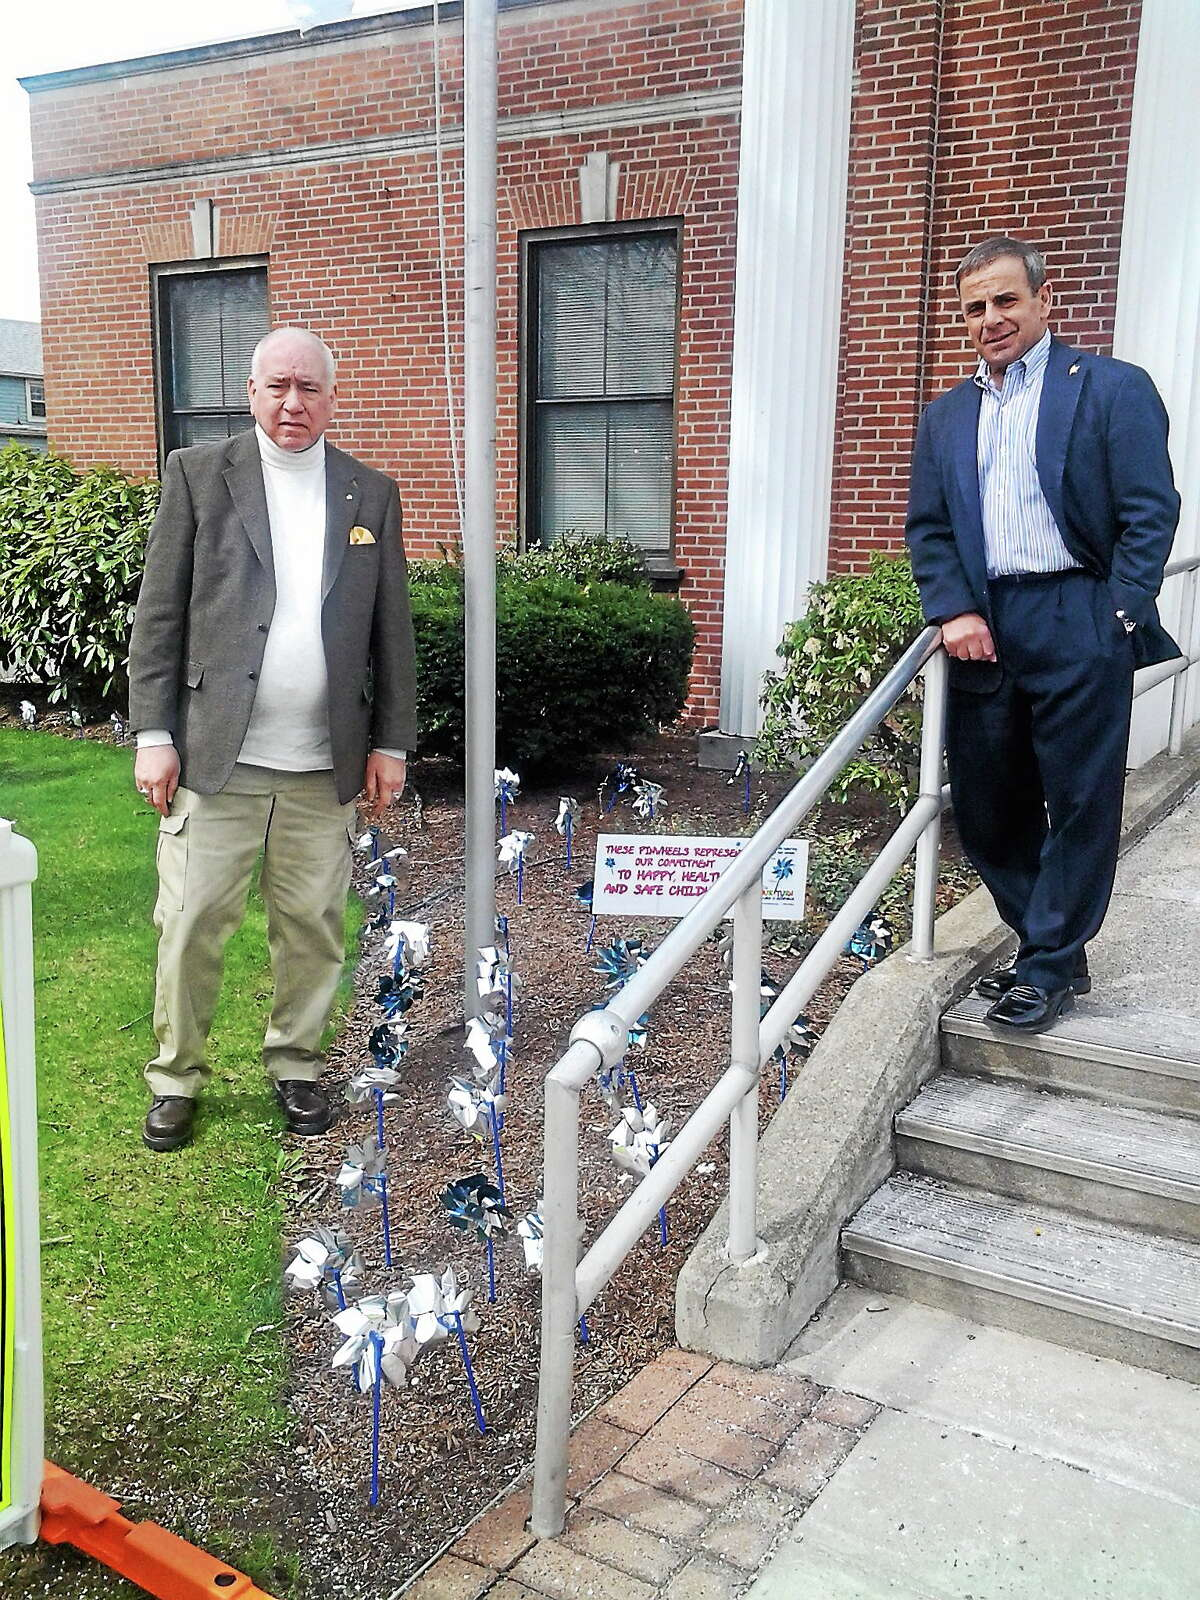 Ray Fowler, left, and First Selectman Michael Freda stand outside Town Hall with pinwheels symbolizing National Child Abuse Awareness Month.